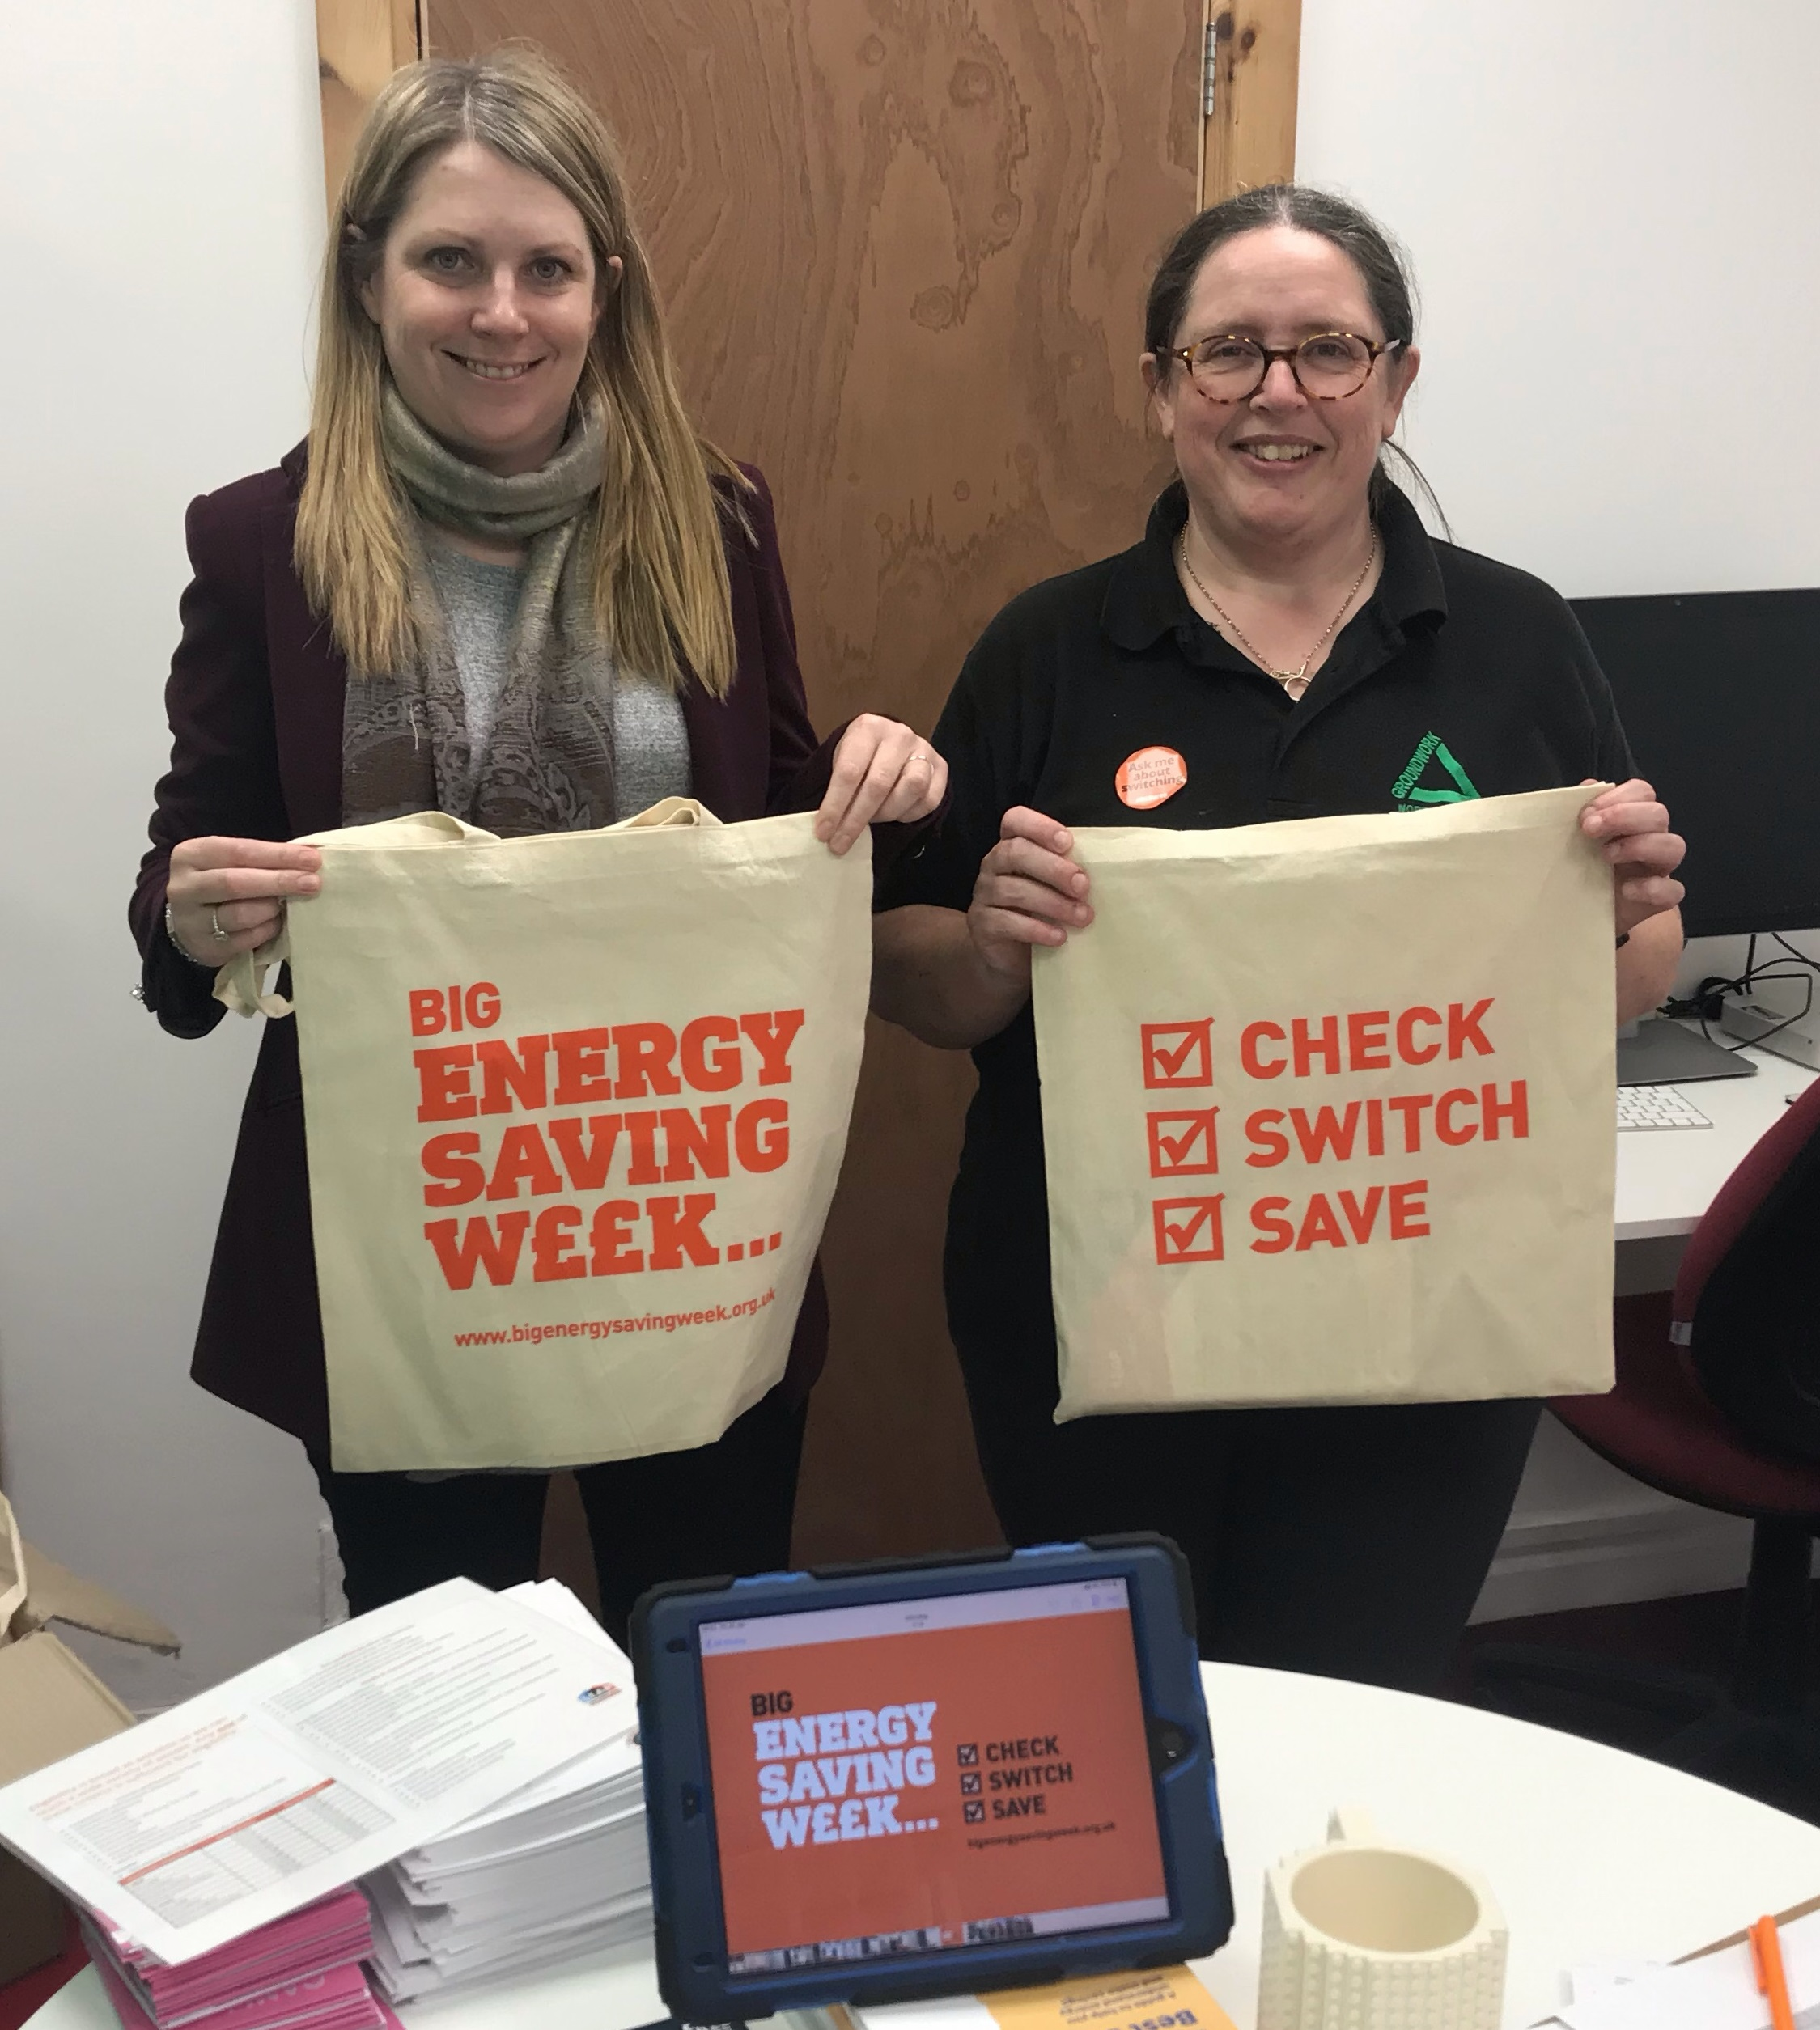 Groundwork North Wales – supporting Big Energy Saving Week with a week of great events